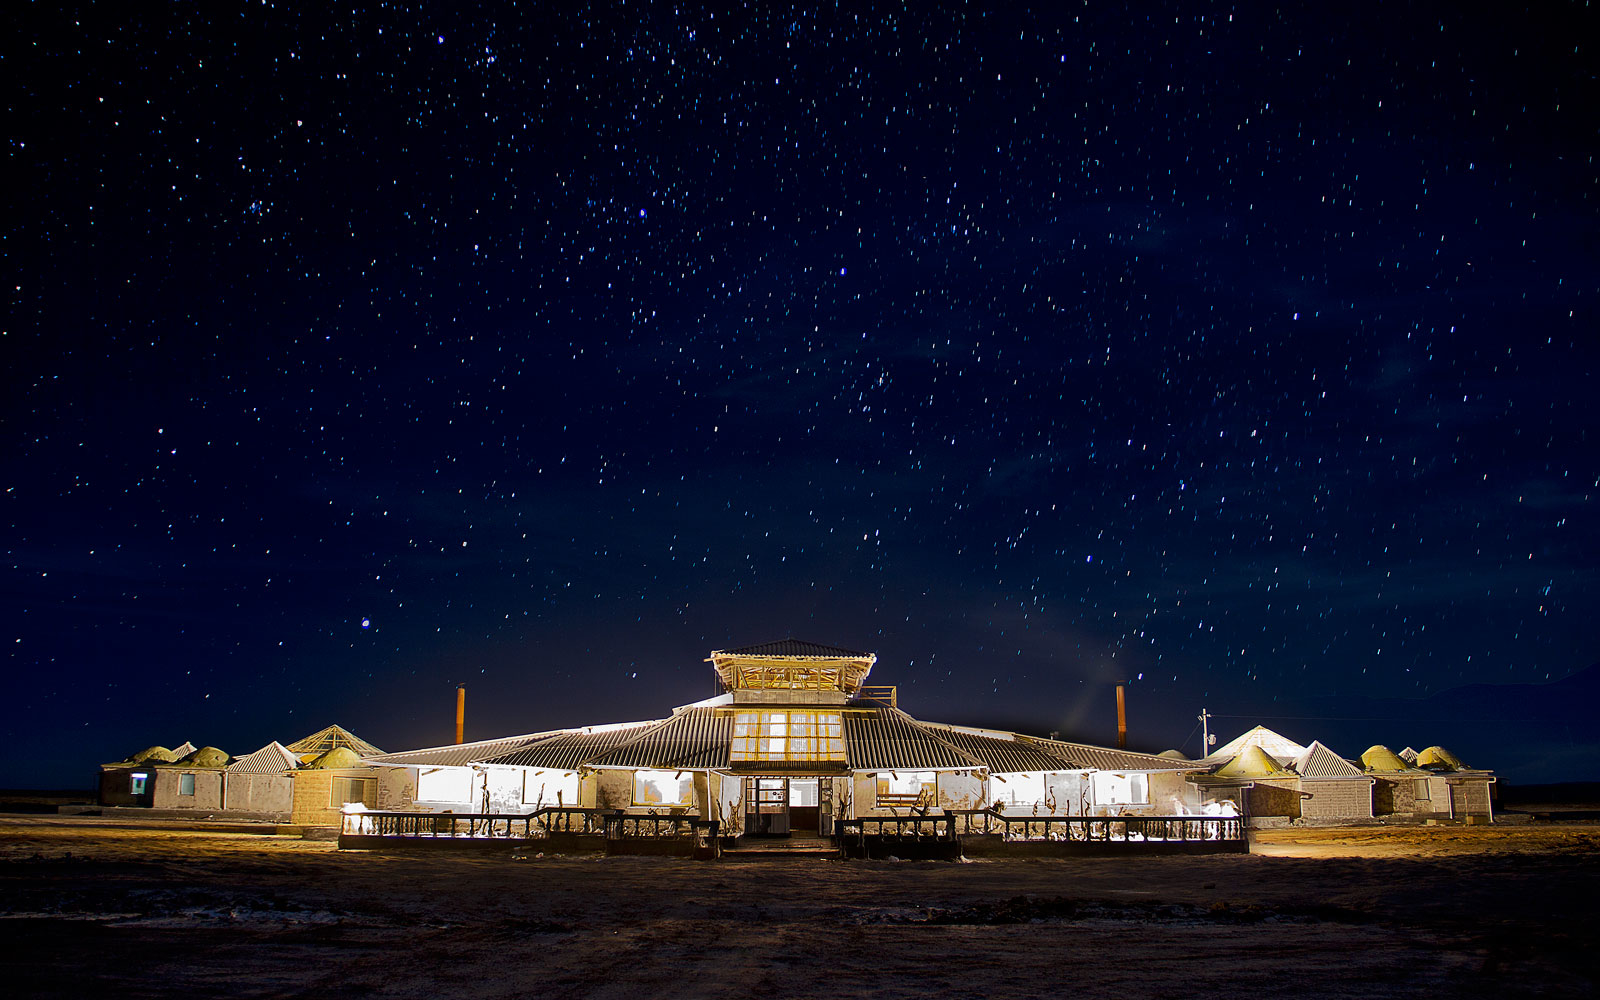 This Hotel in Bolivia is Made Entirely Out of Salt